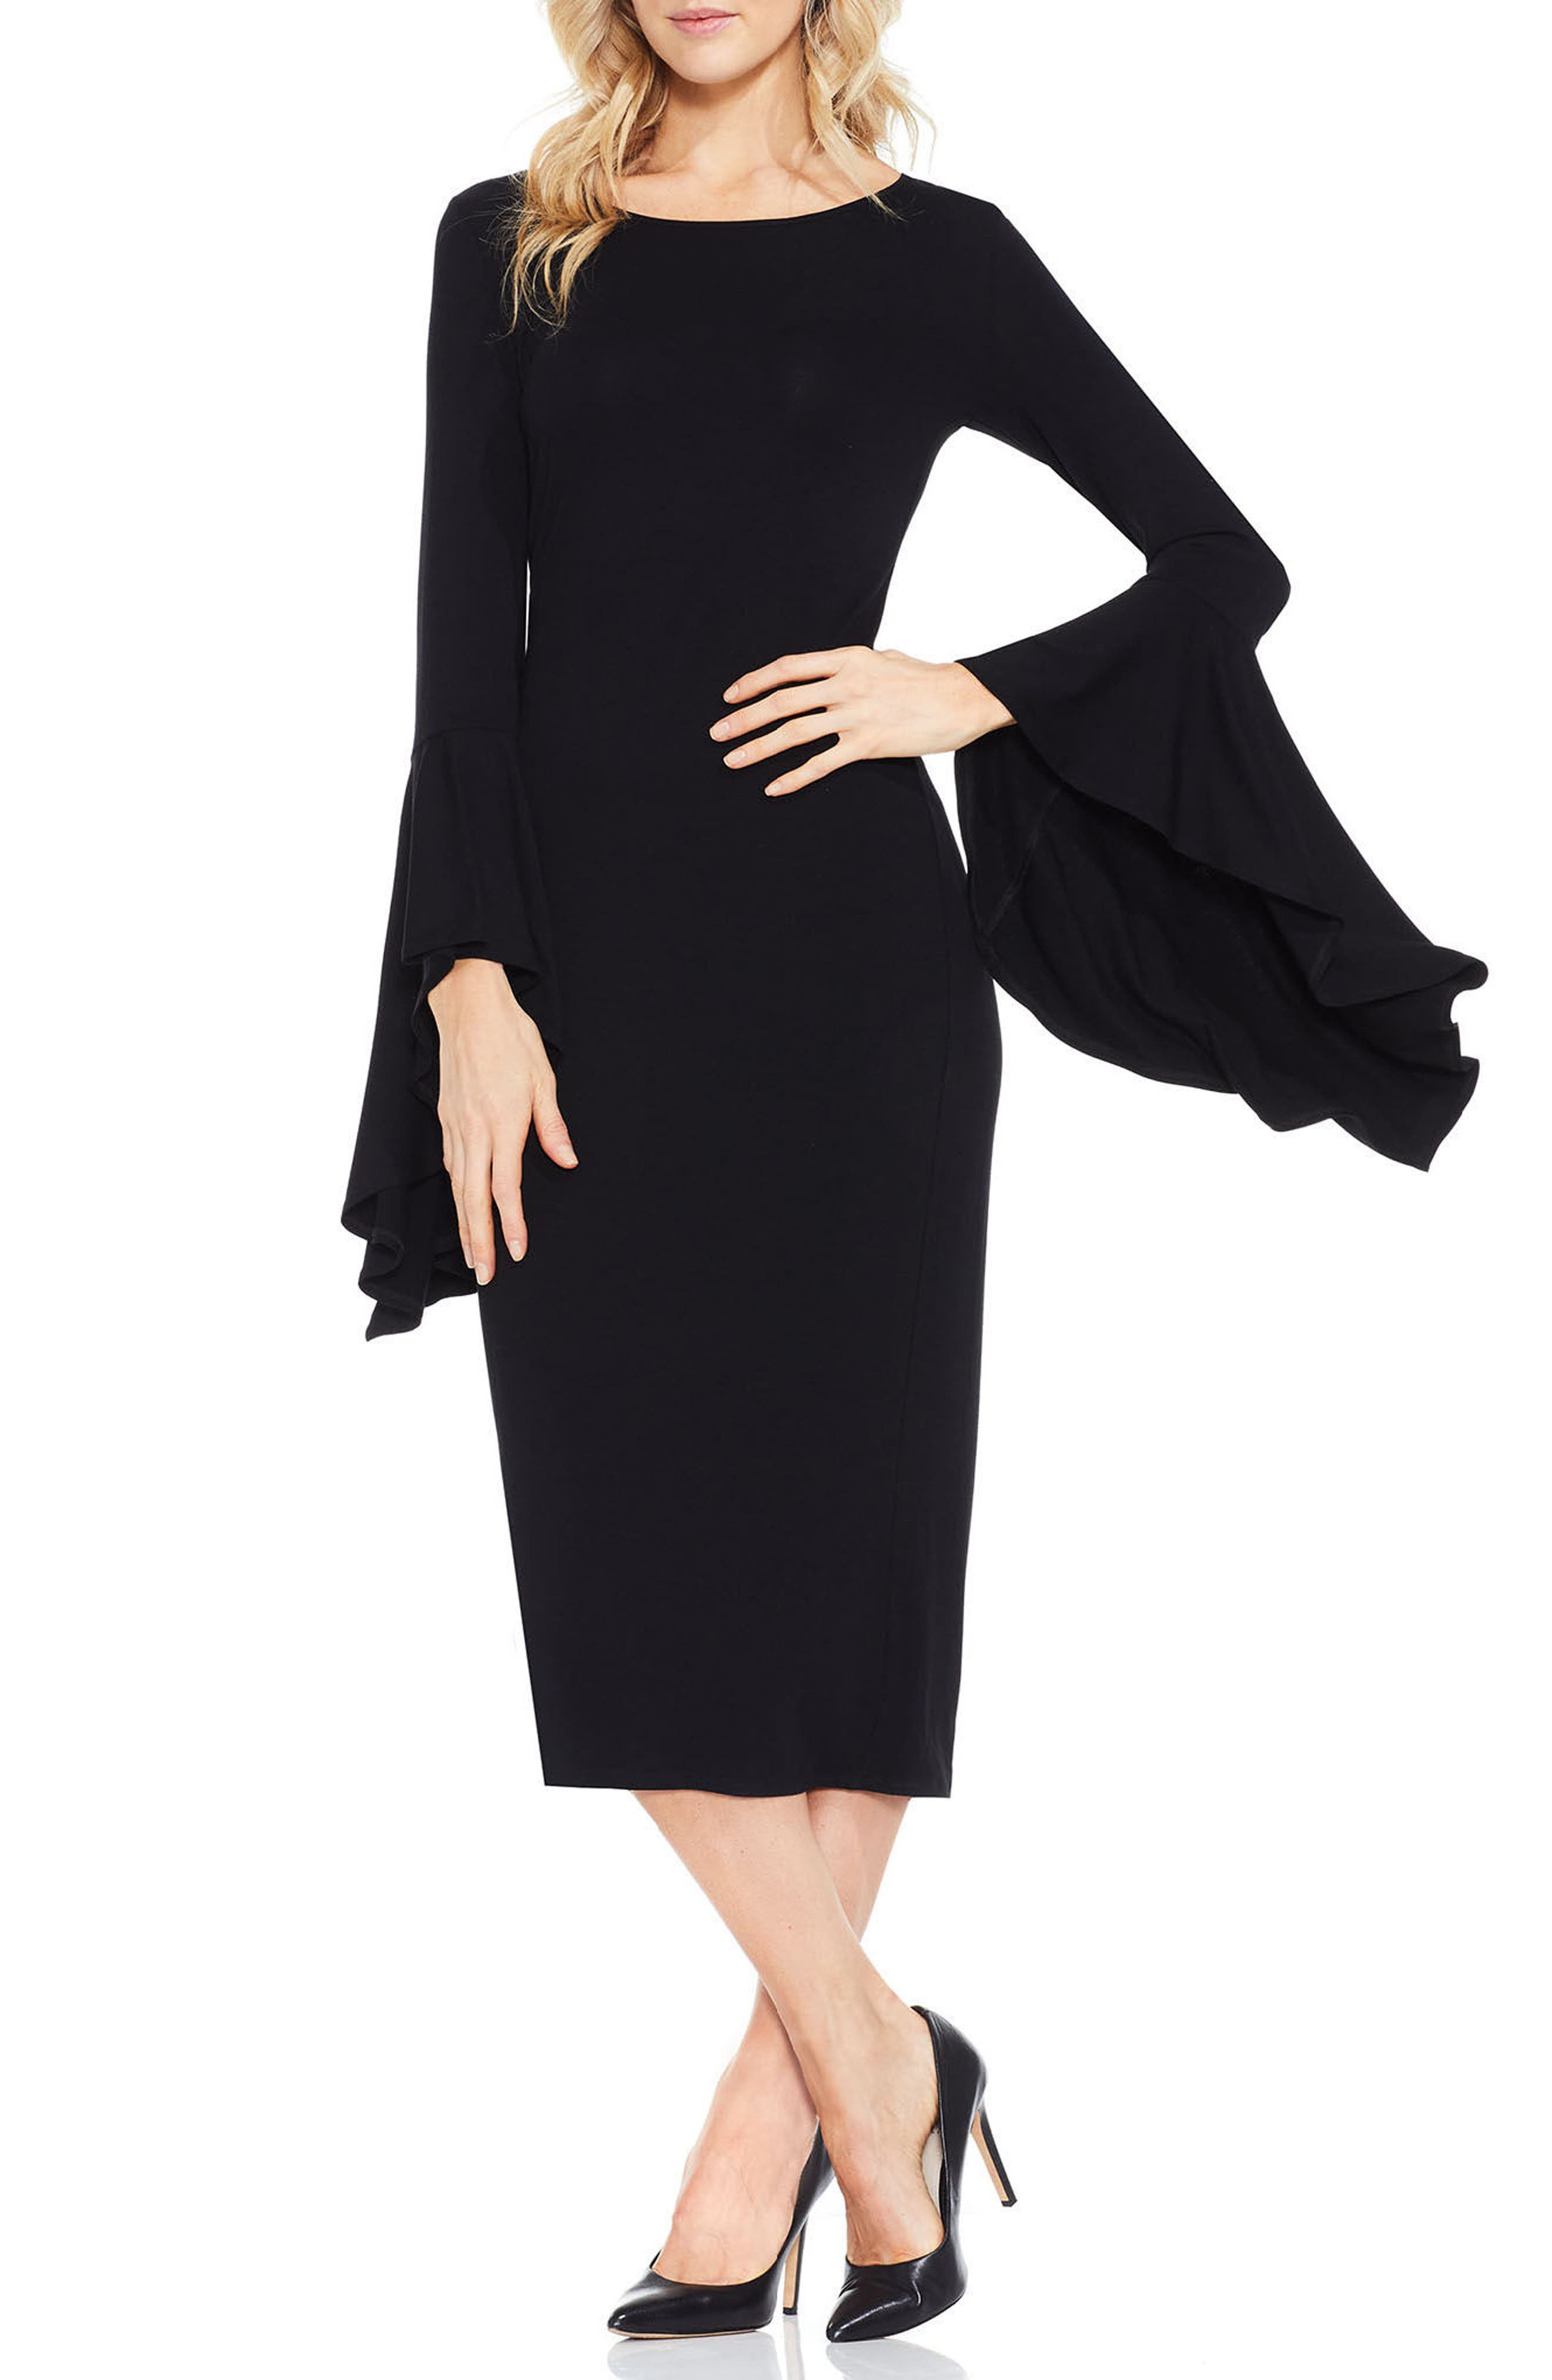 VINCE CAMUTO,                             Bell Sleeve Midi Dress,                             Main thumbnail 1, color,                             006